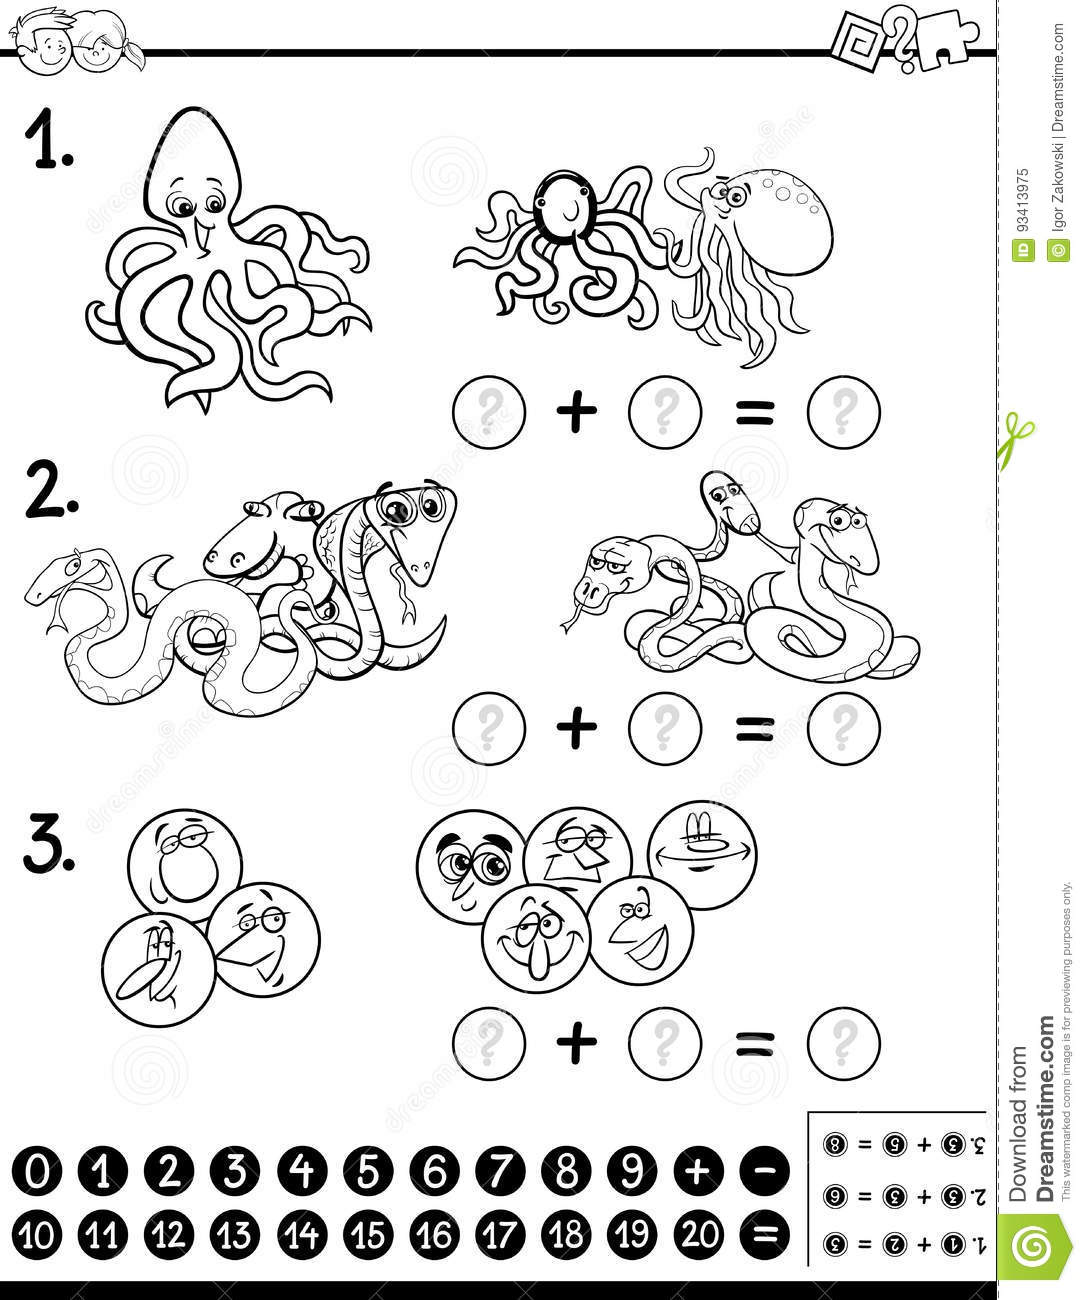 Second Hand Smoking Sheets Coloring Pages